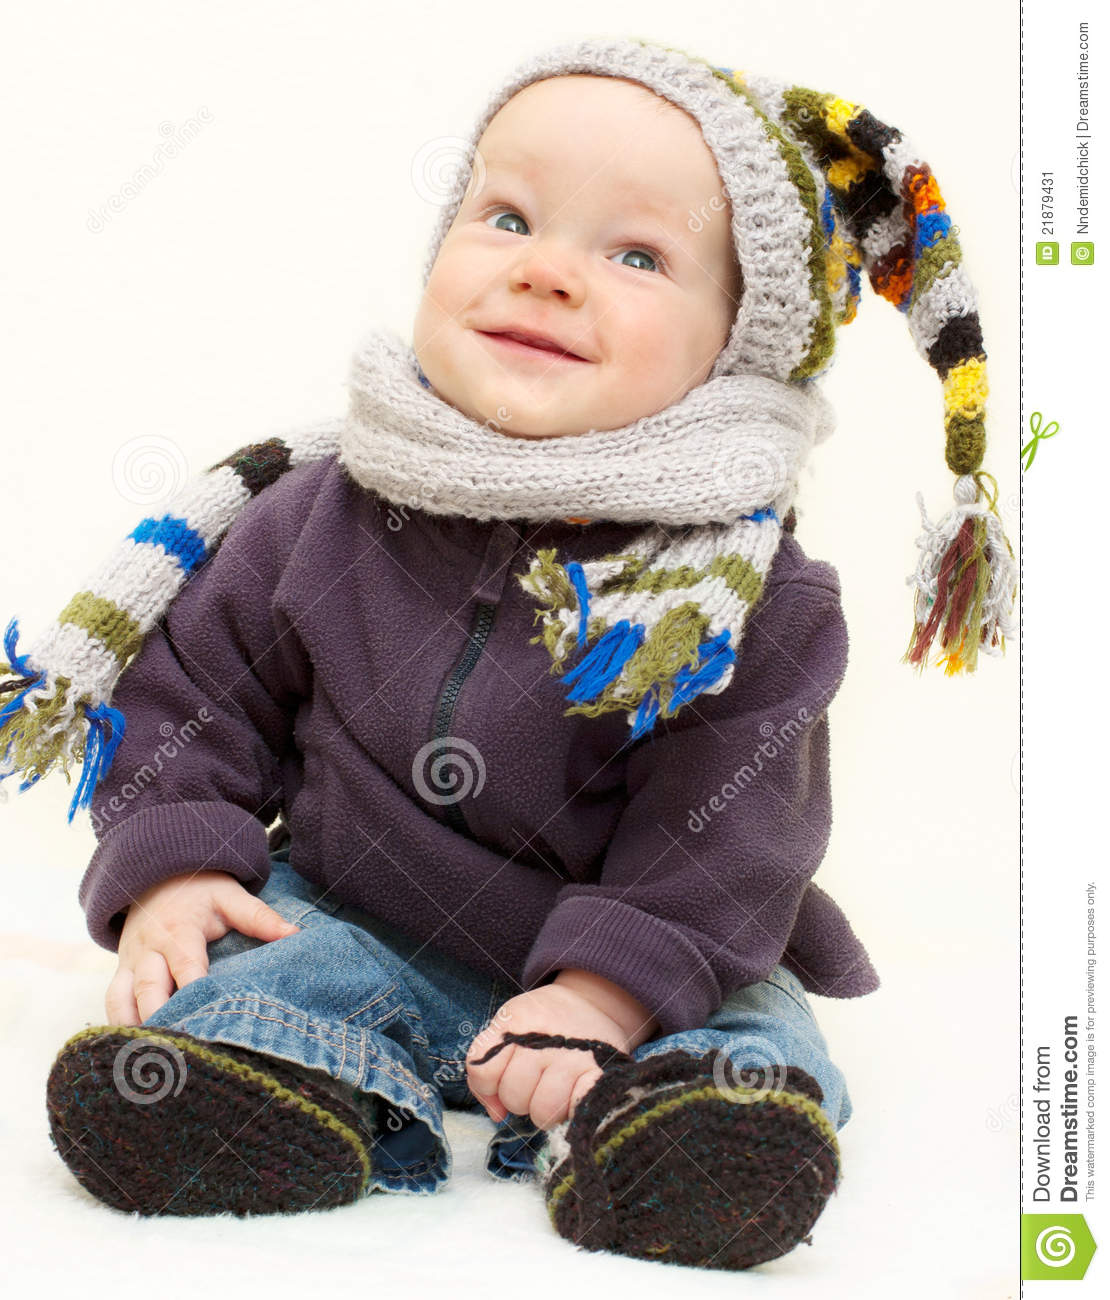 cute baby boy in knitted handmade wear stock image - image of child